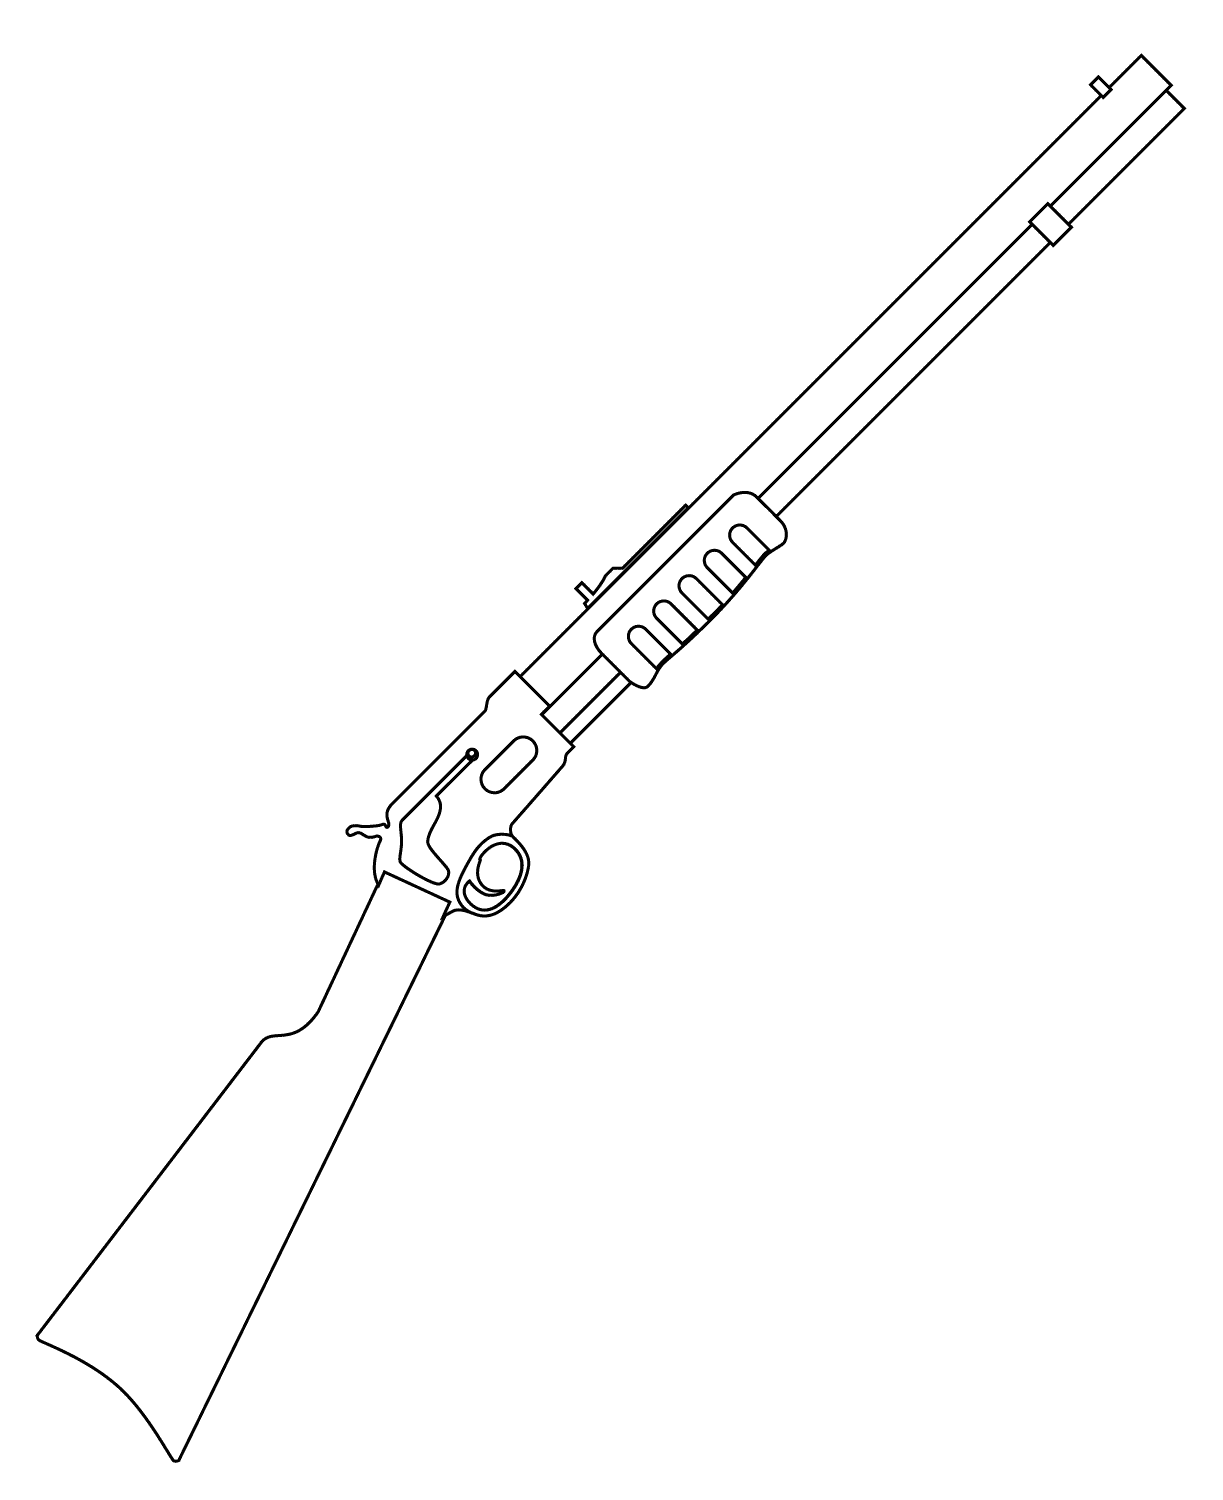 gun colouring pictures pistol coloring pages to download and print for free gun colouring pictures